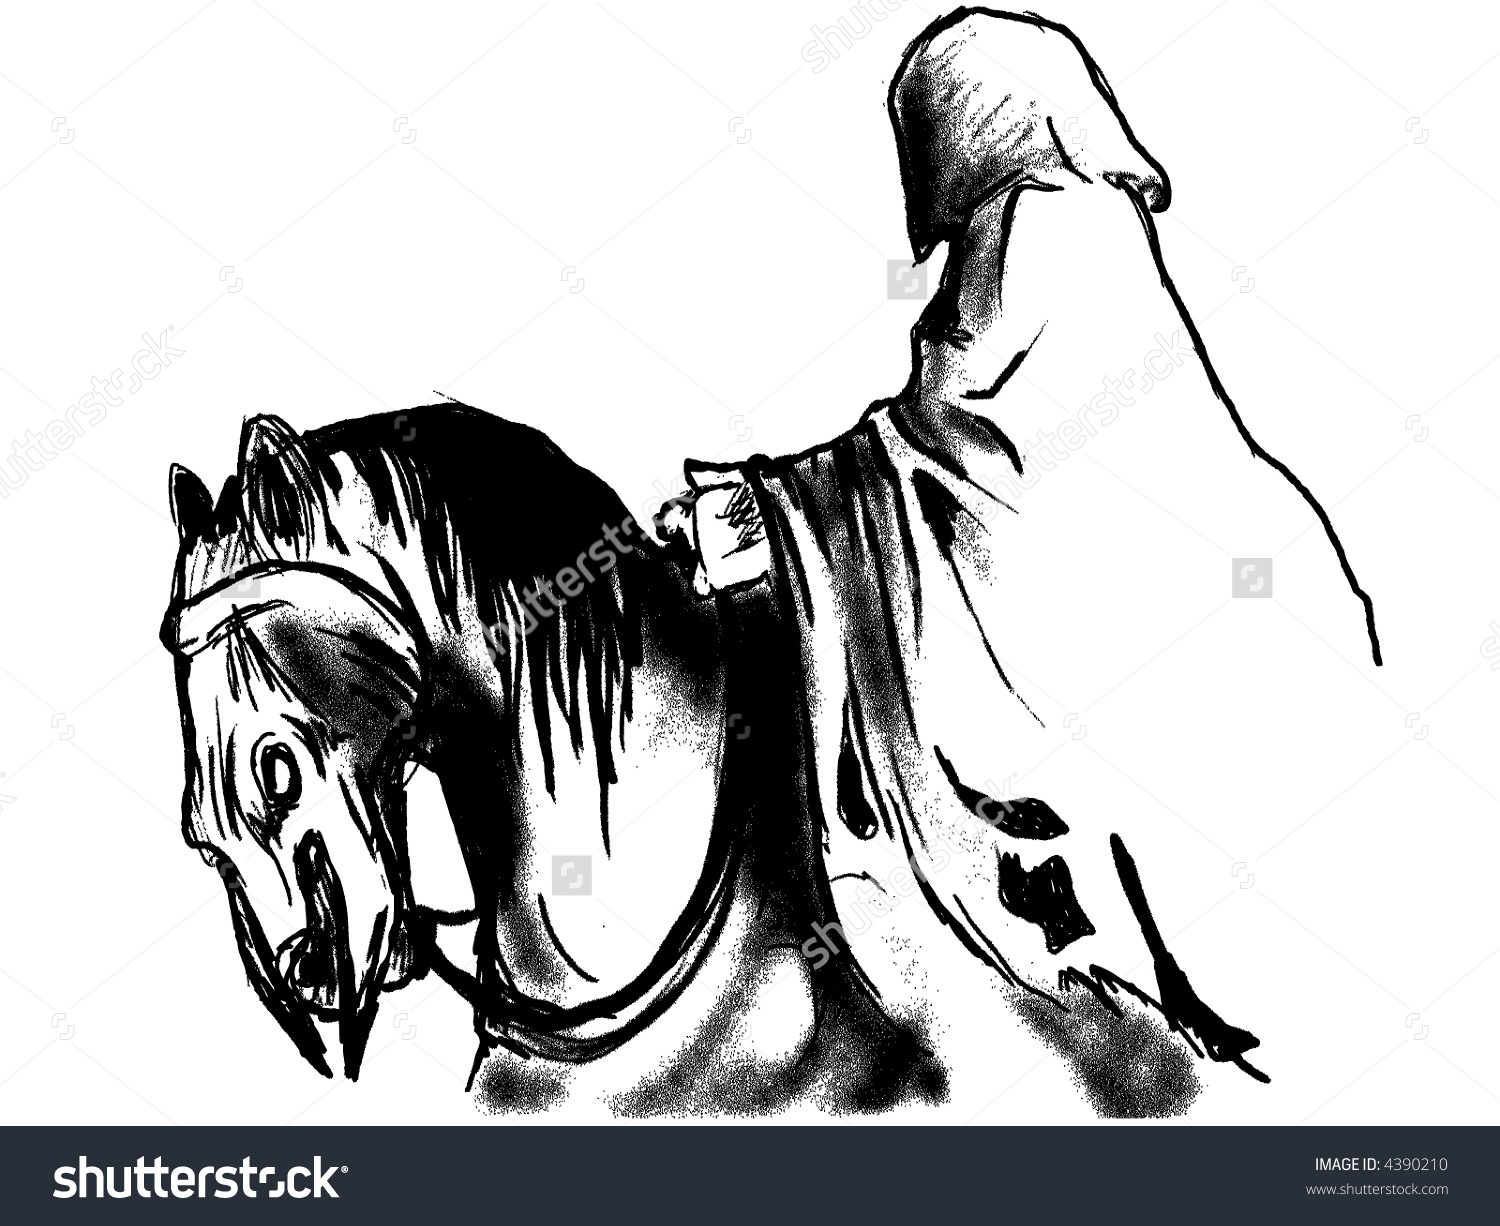 Nazgul clipart #5, Download drawings